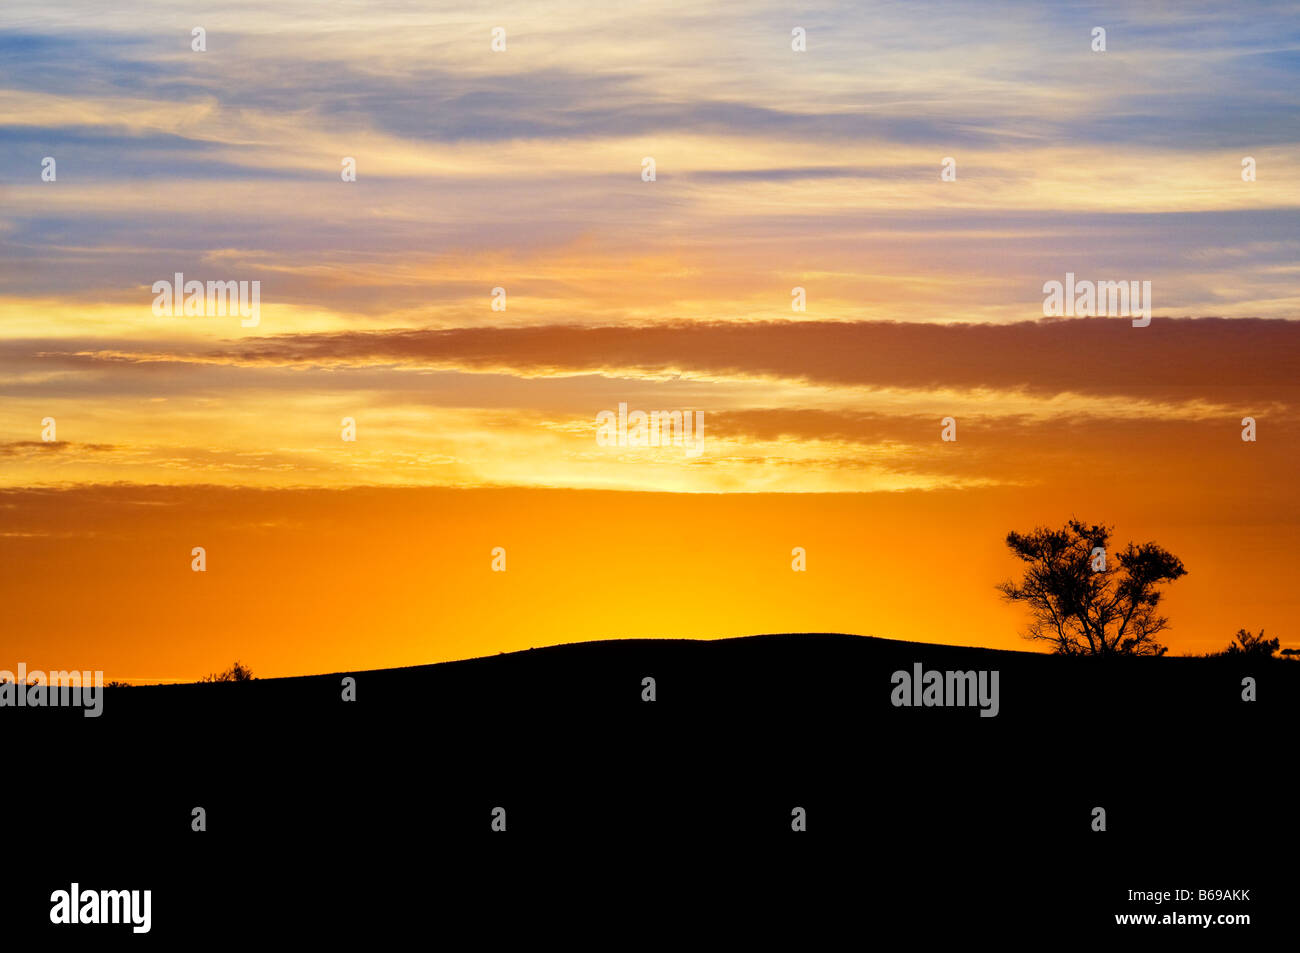 Sunset silhouette at Yunta South Australia - Stock Image